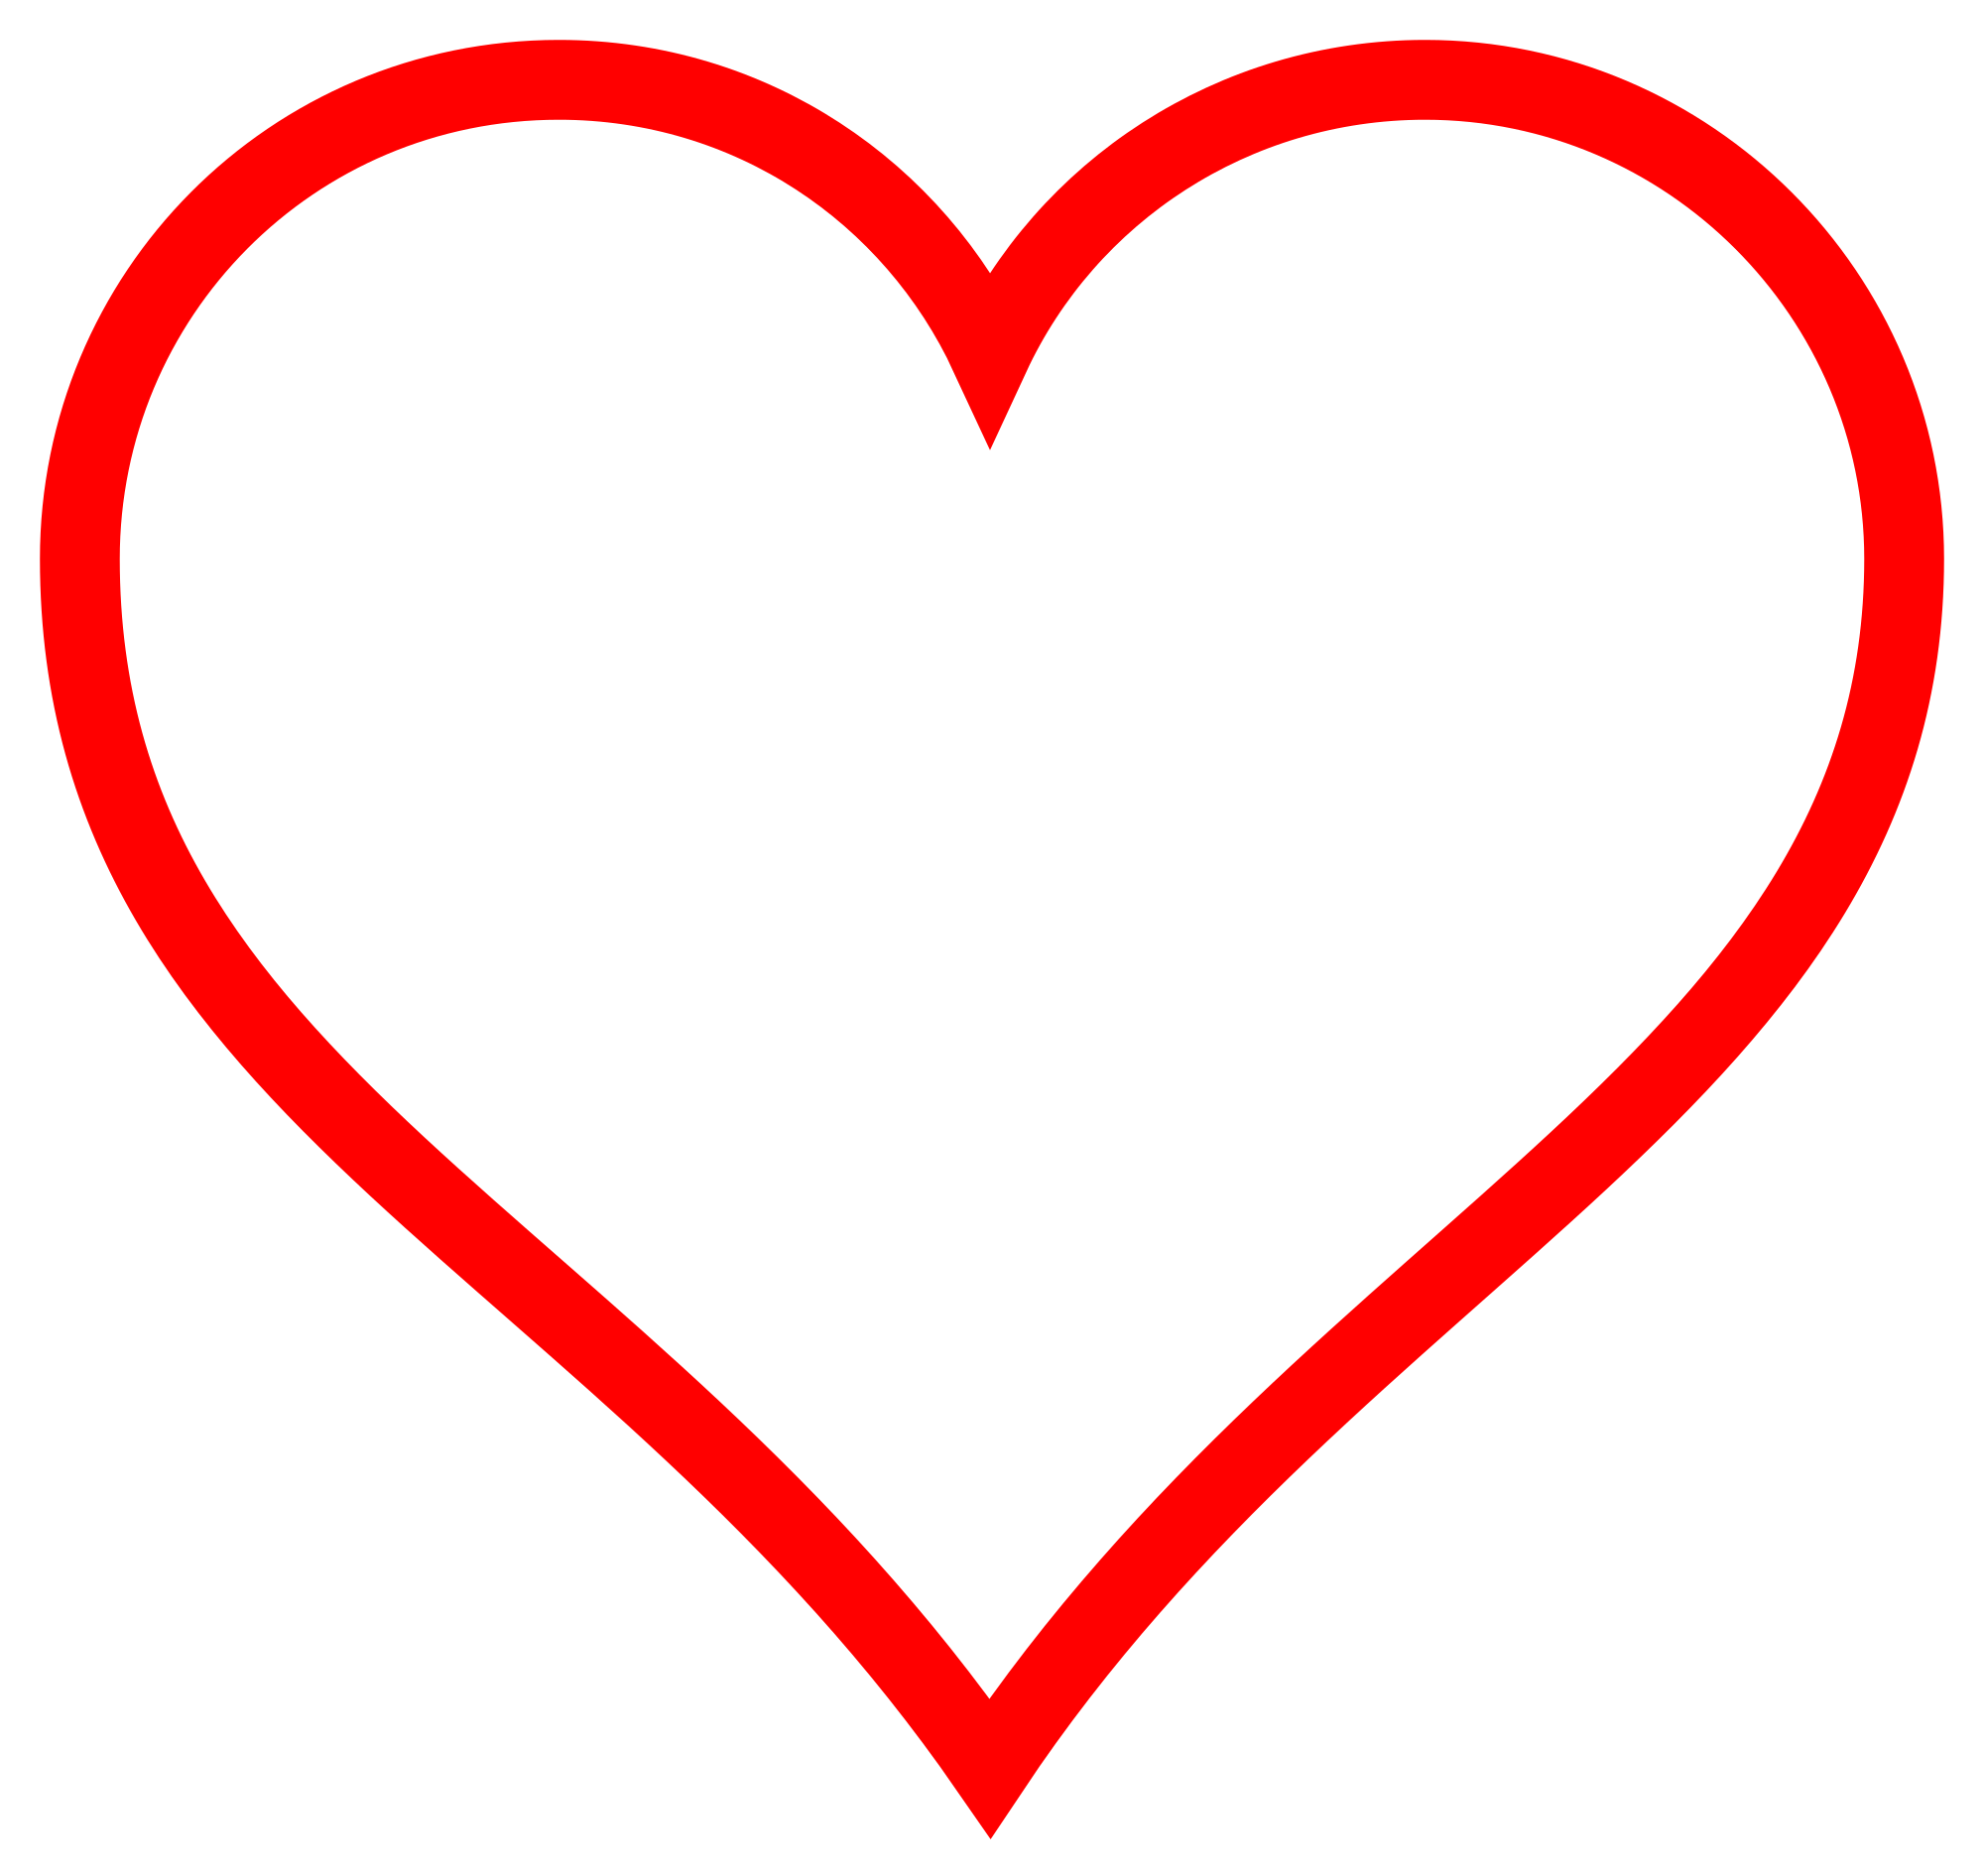 Hollow heart clipart png freeuse stock File:Heart icon red hollow.svg - Wikimedia Commons png freeuse stock